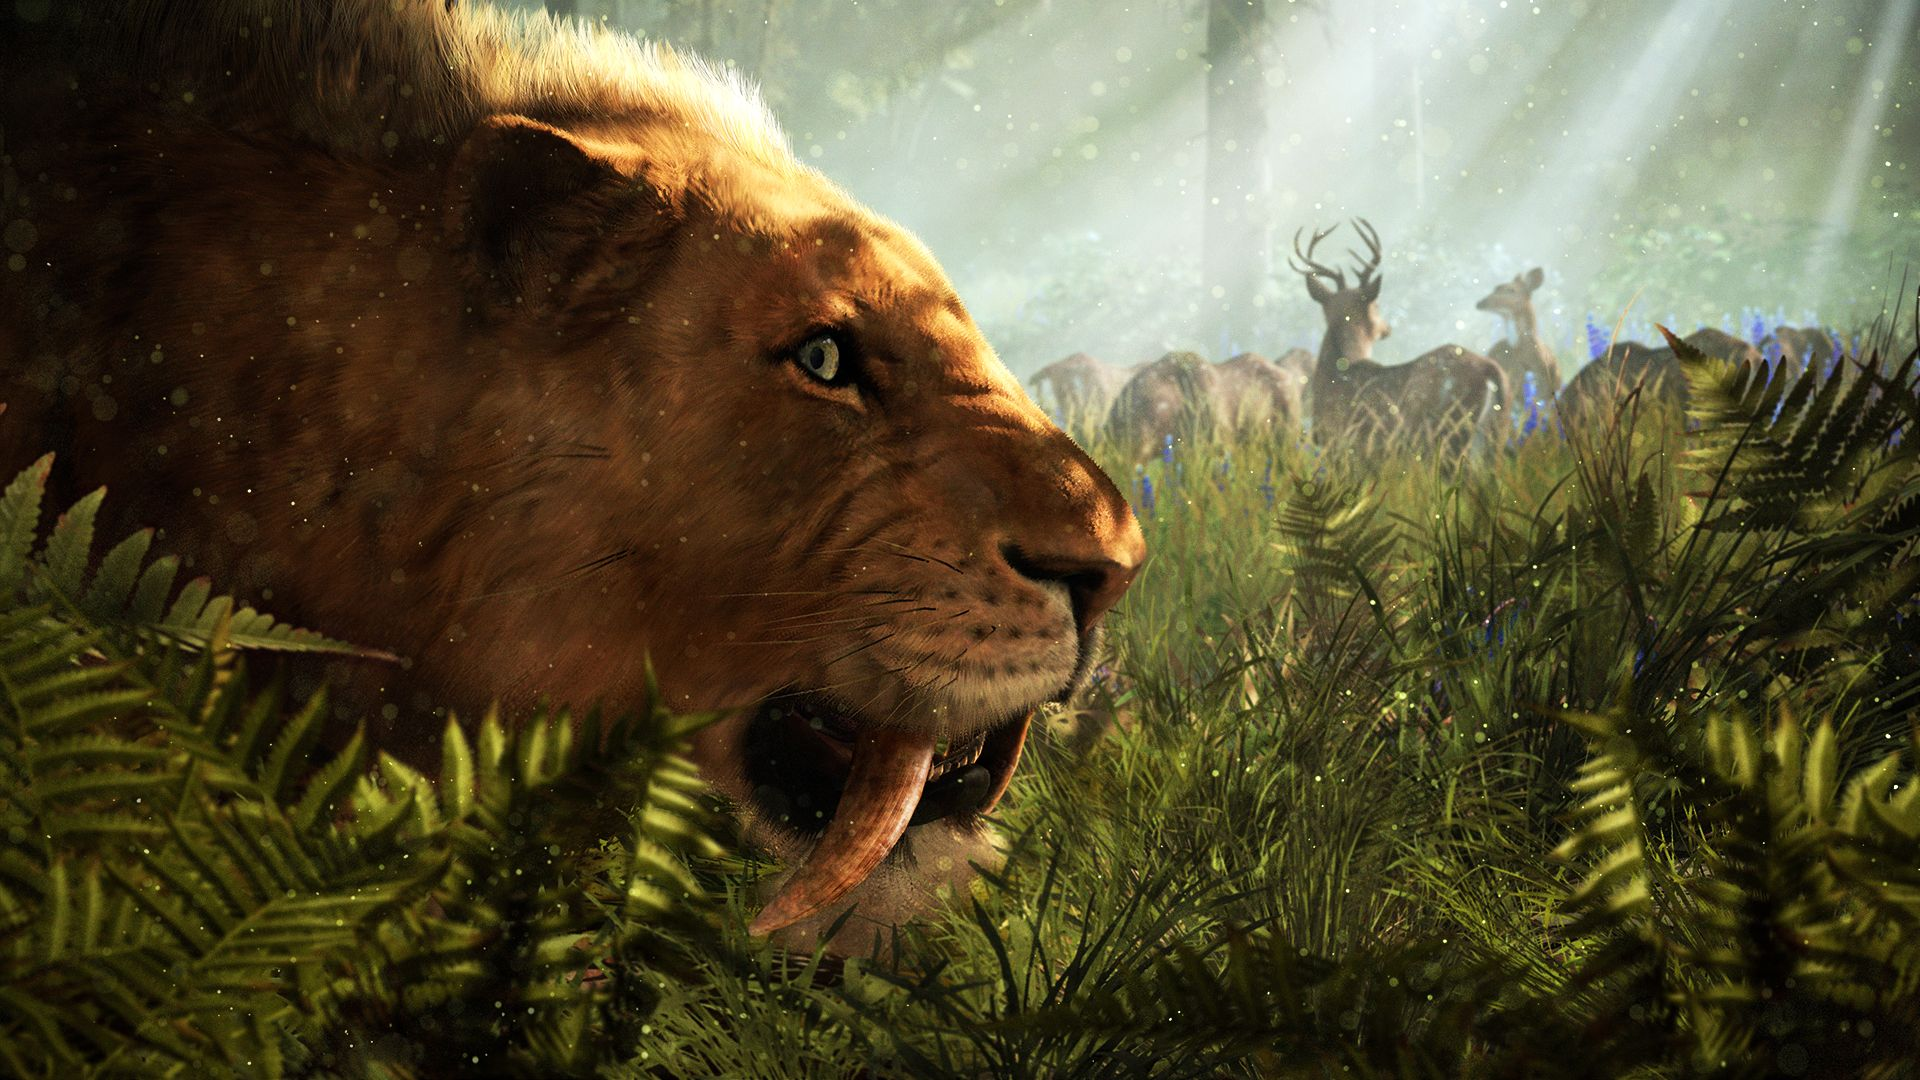 in review Far Cry Primal: animalele